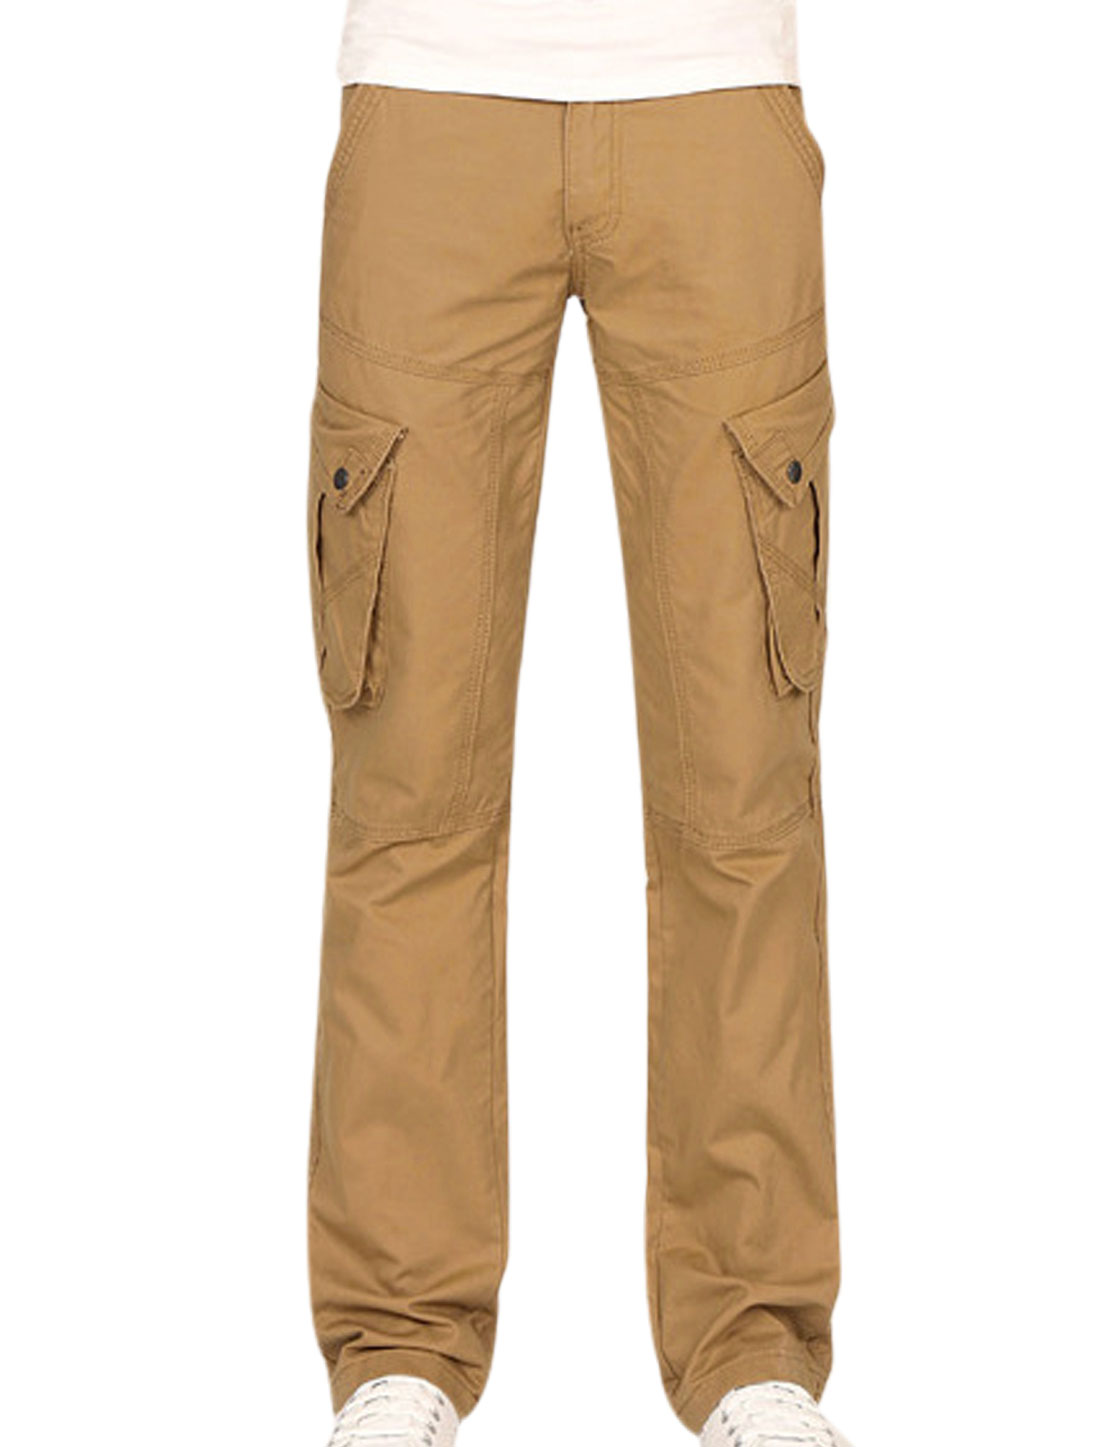 Man Zip Up Double Slant Pocket Sides Button Closed Khaki Cargo Pants W34